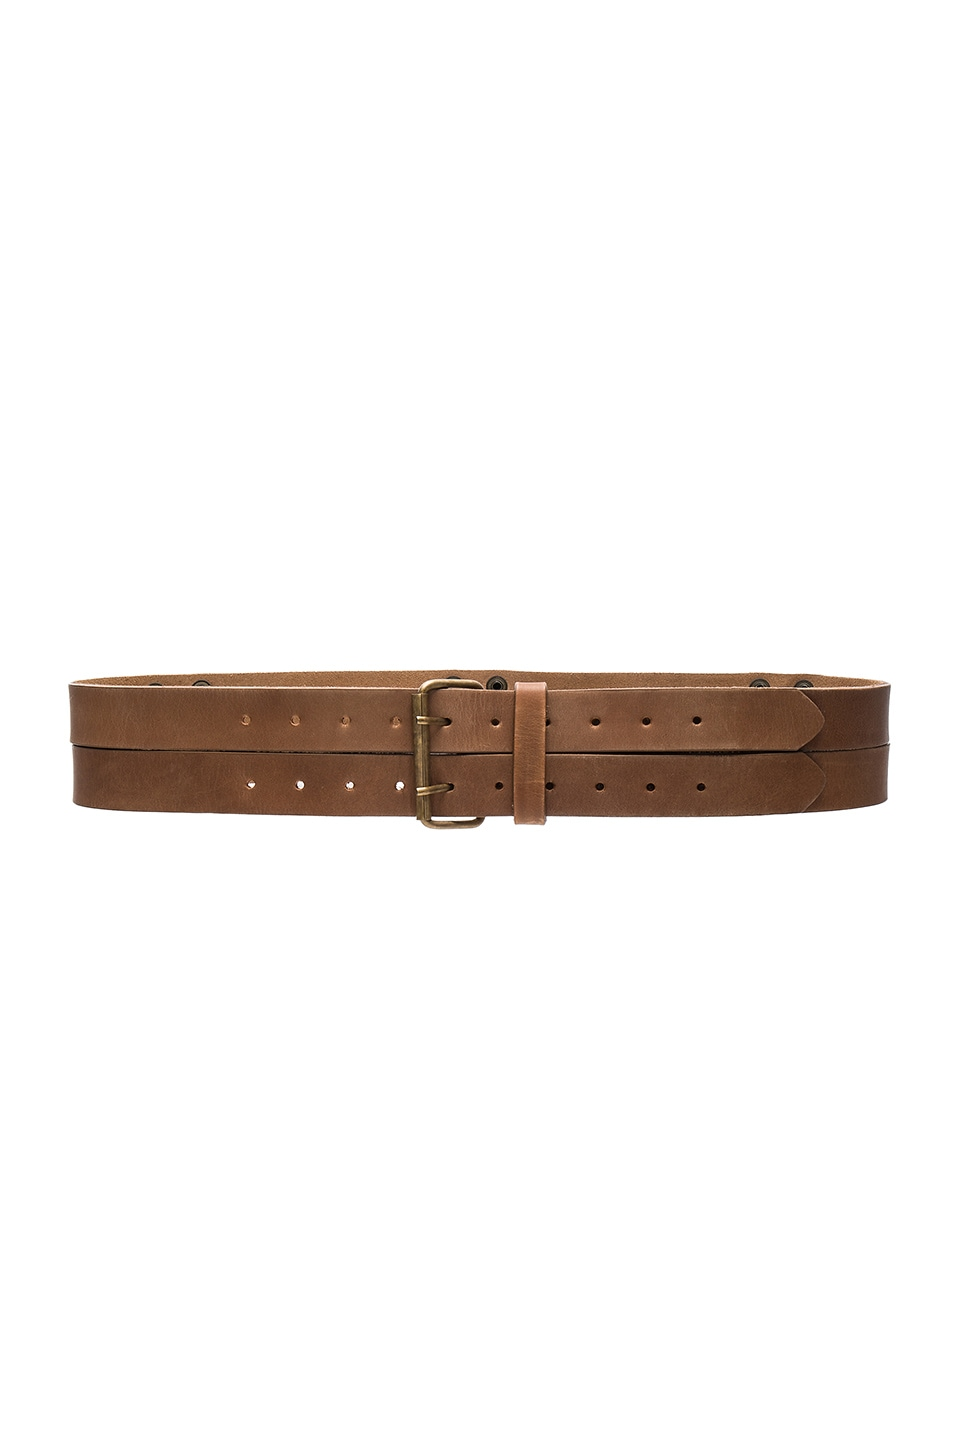 Sandra Waist Belt by Ada